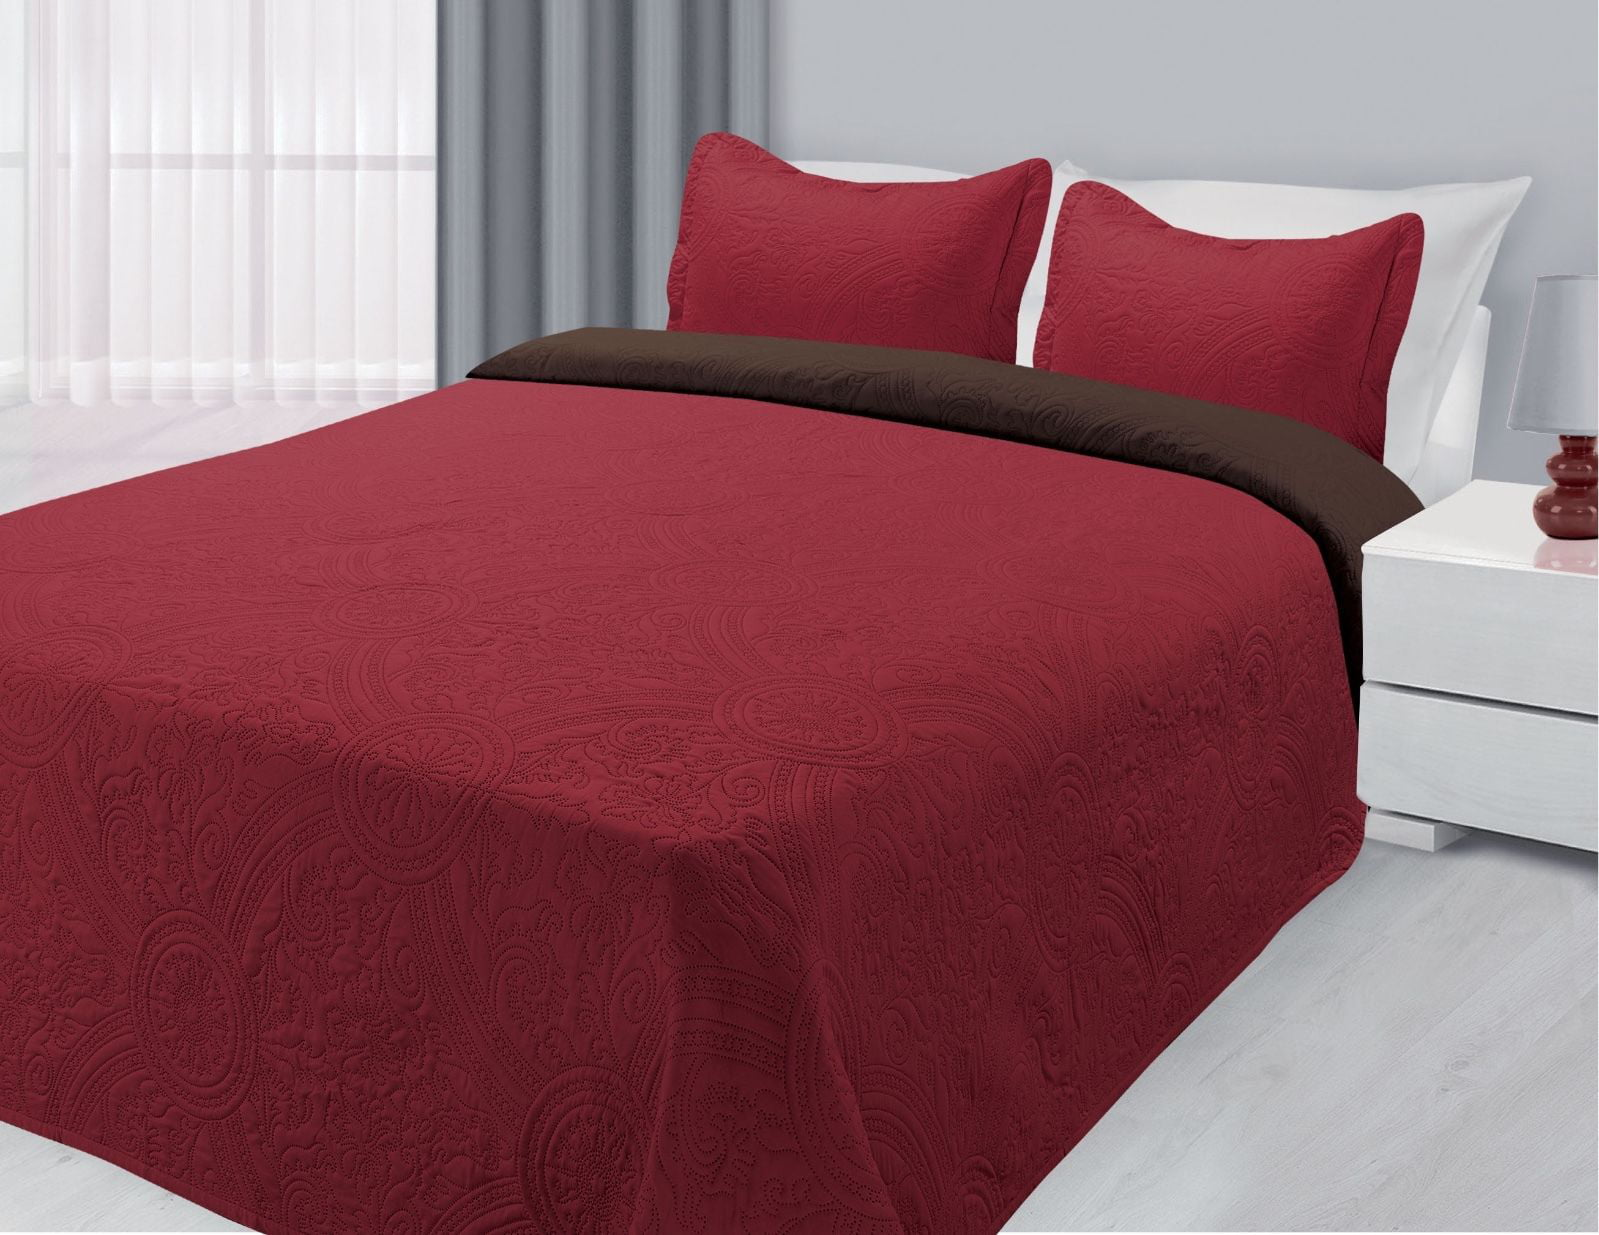 3-Piece Reversible Quilted Bedspread Coverlet Burgundy & Brown Twin Size by